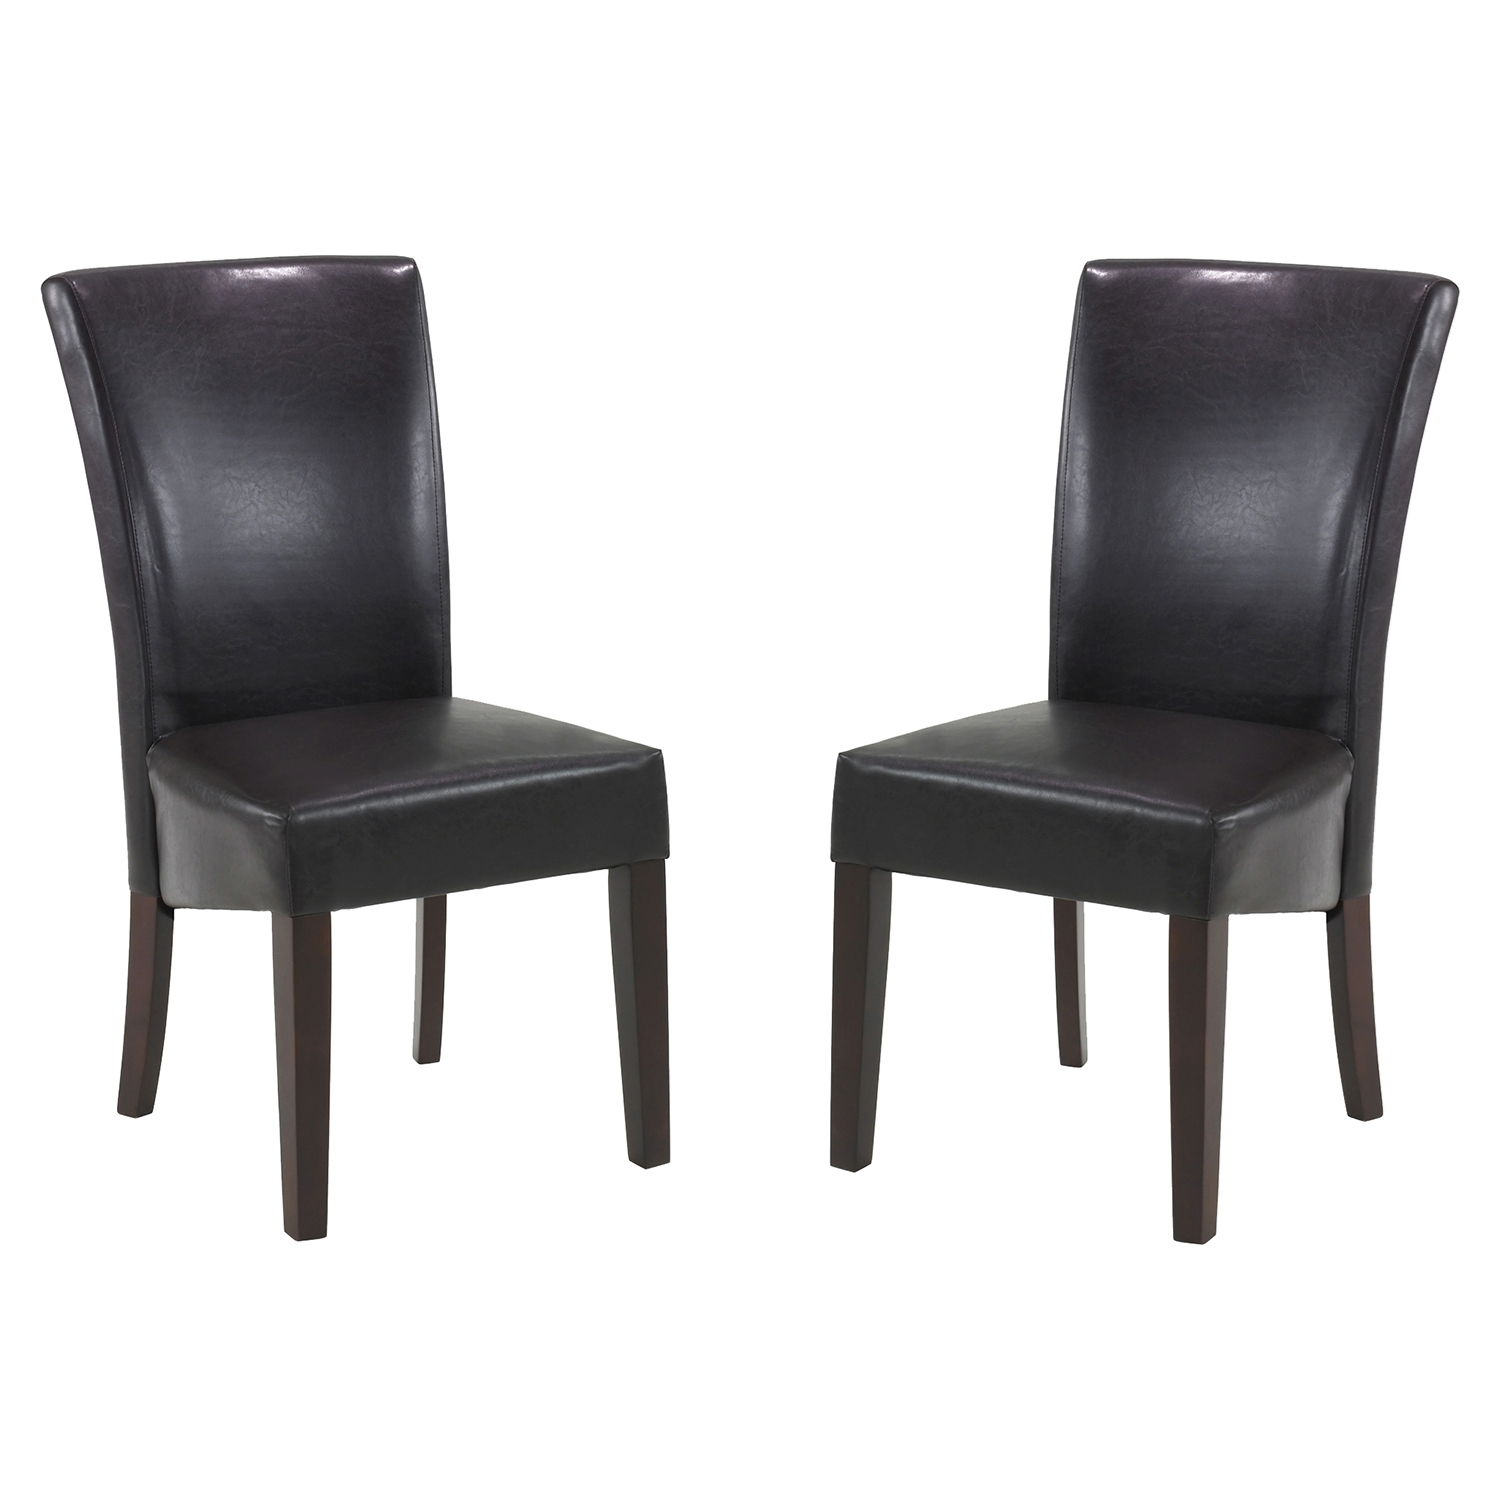 Montecito Side Chair - Brown (Set of 2)